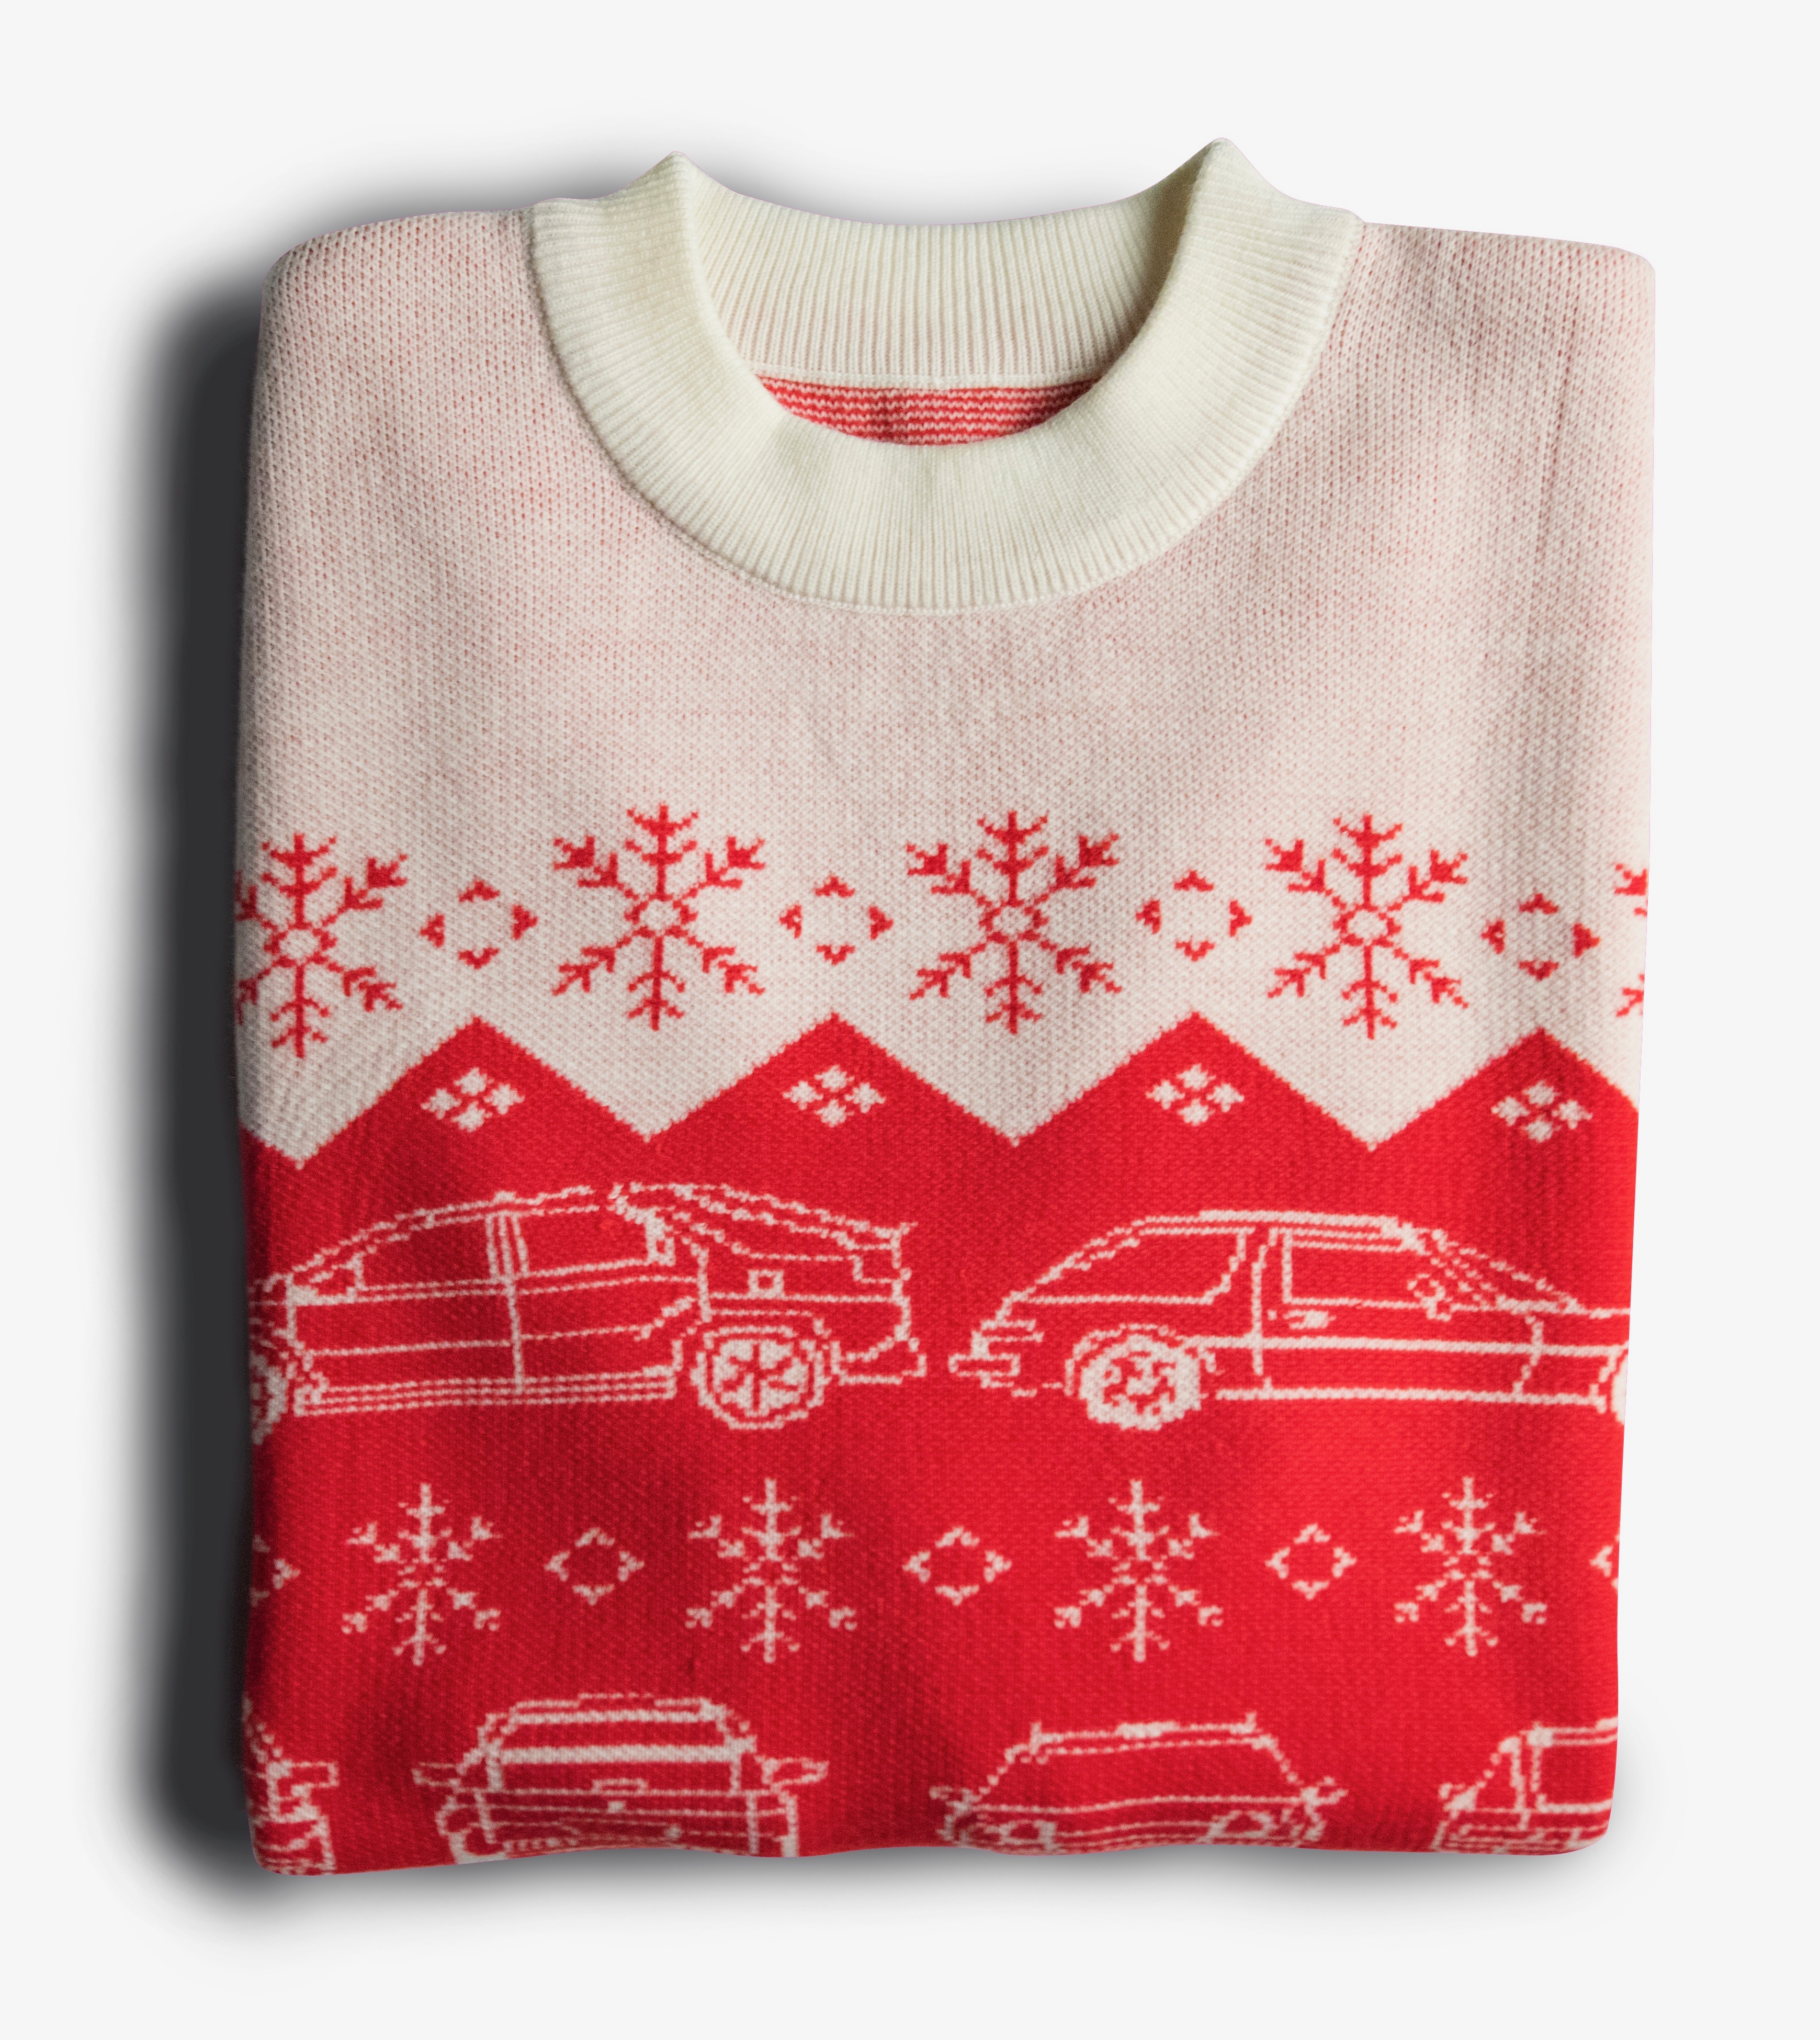 e3da98183f7492 Ugly holiday car sweater from Hagerty provides child car seats